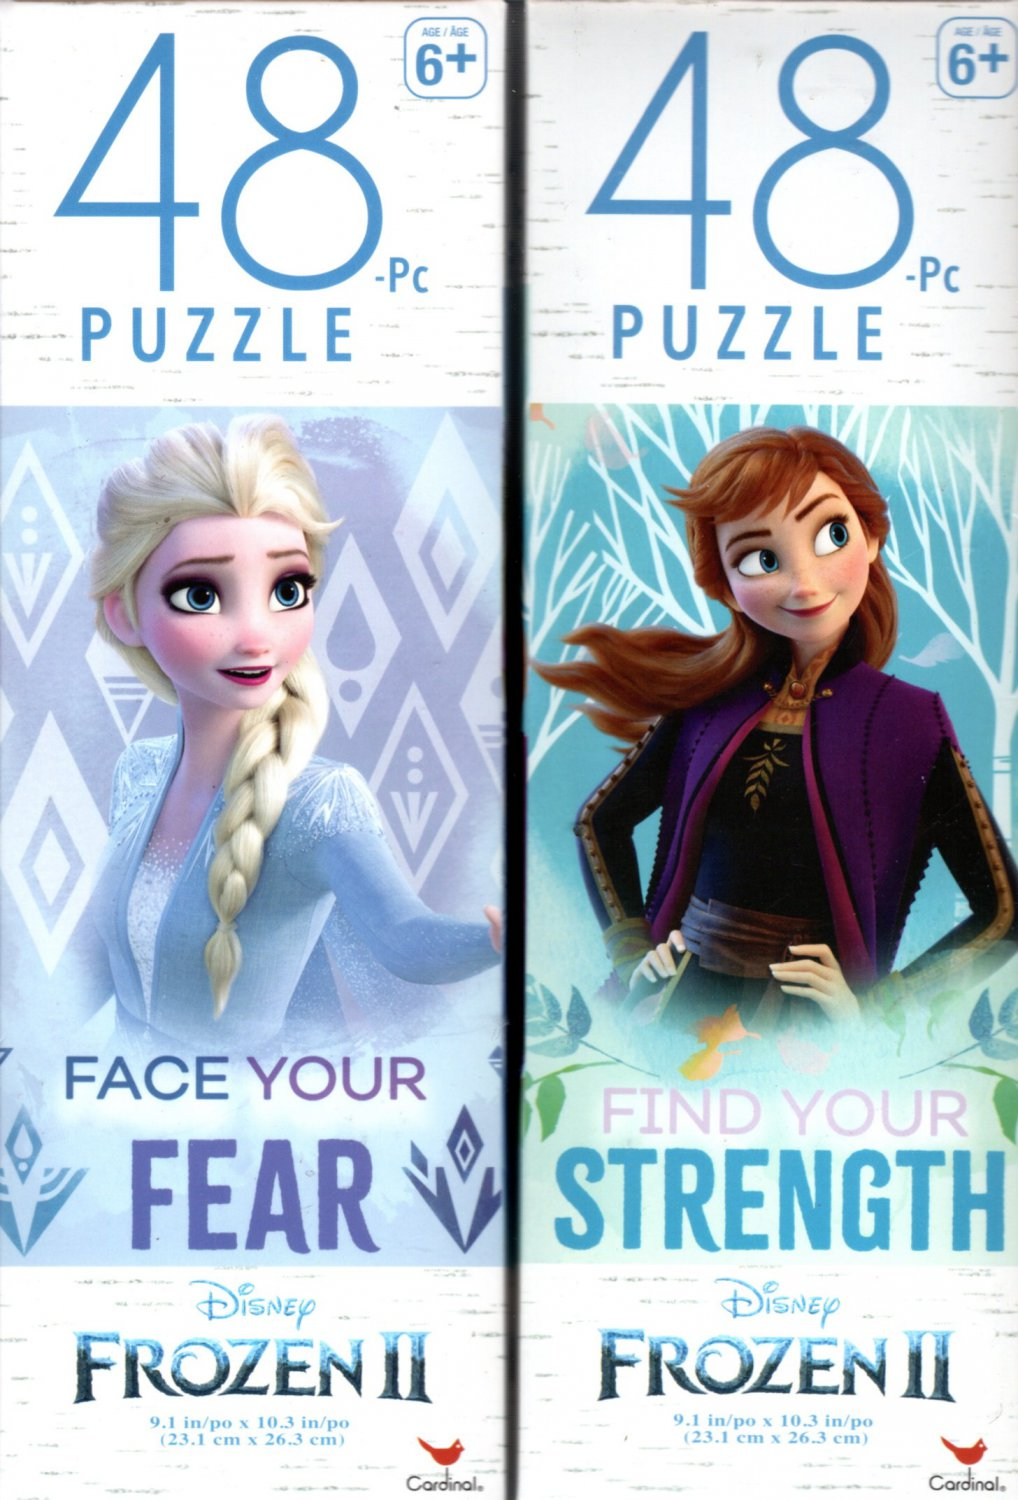 Disney Froze II - 48 Pieces Jigsaw Puzzle - v1 (Set of 2)